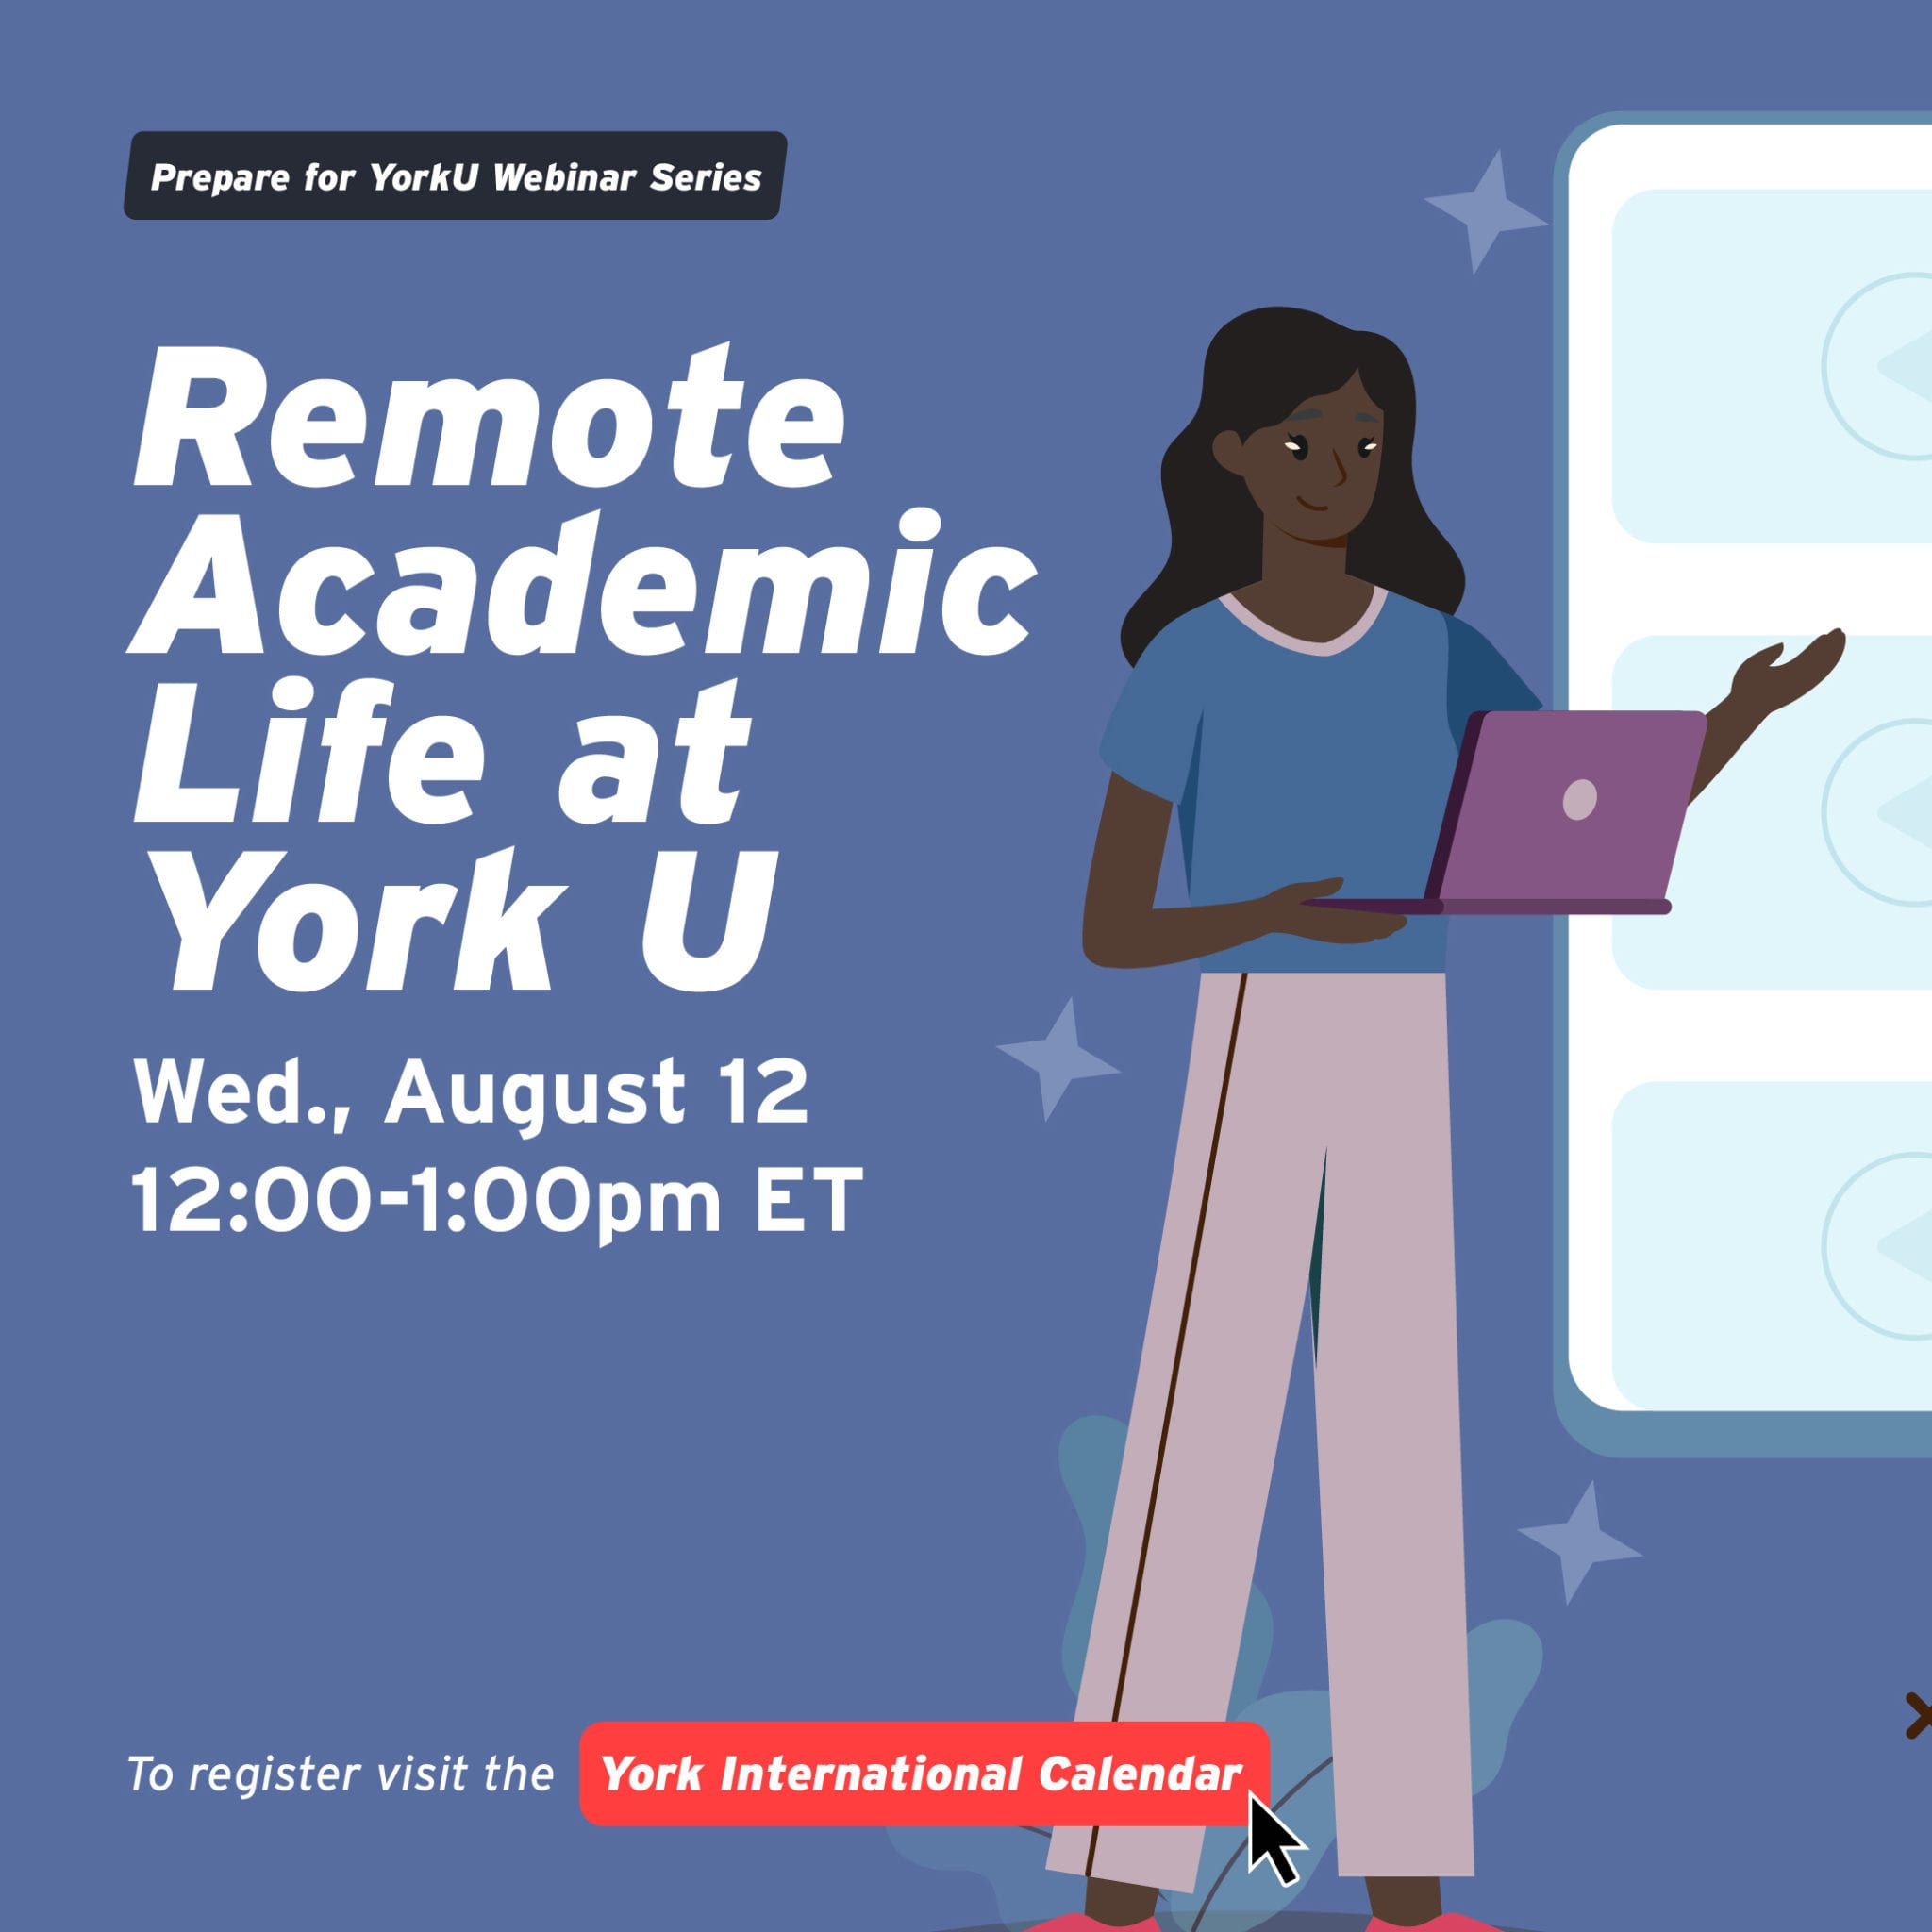 Prepare for YorkU Webinar: Remote Academic Life at York U @ Virtual